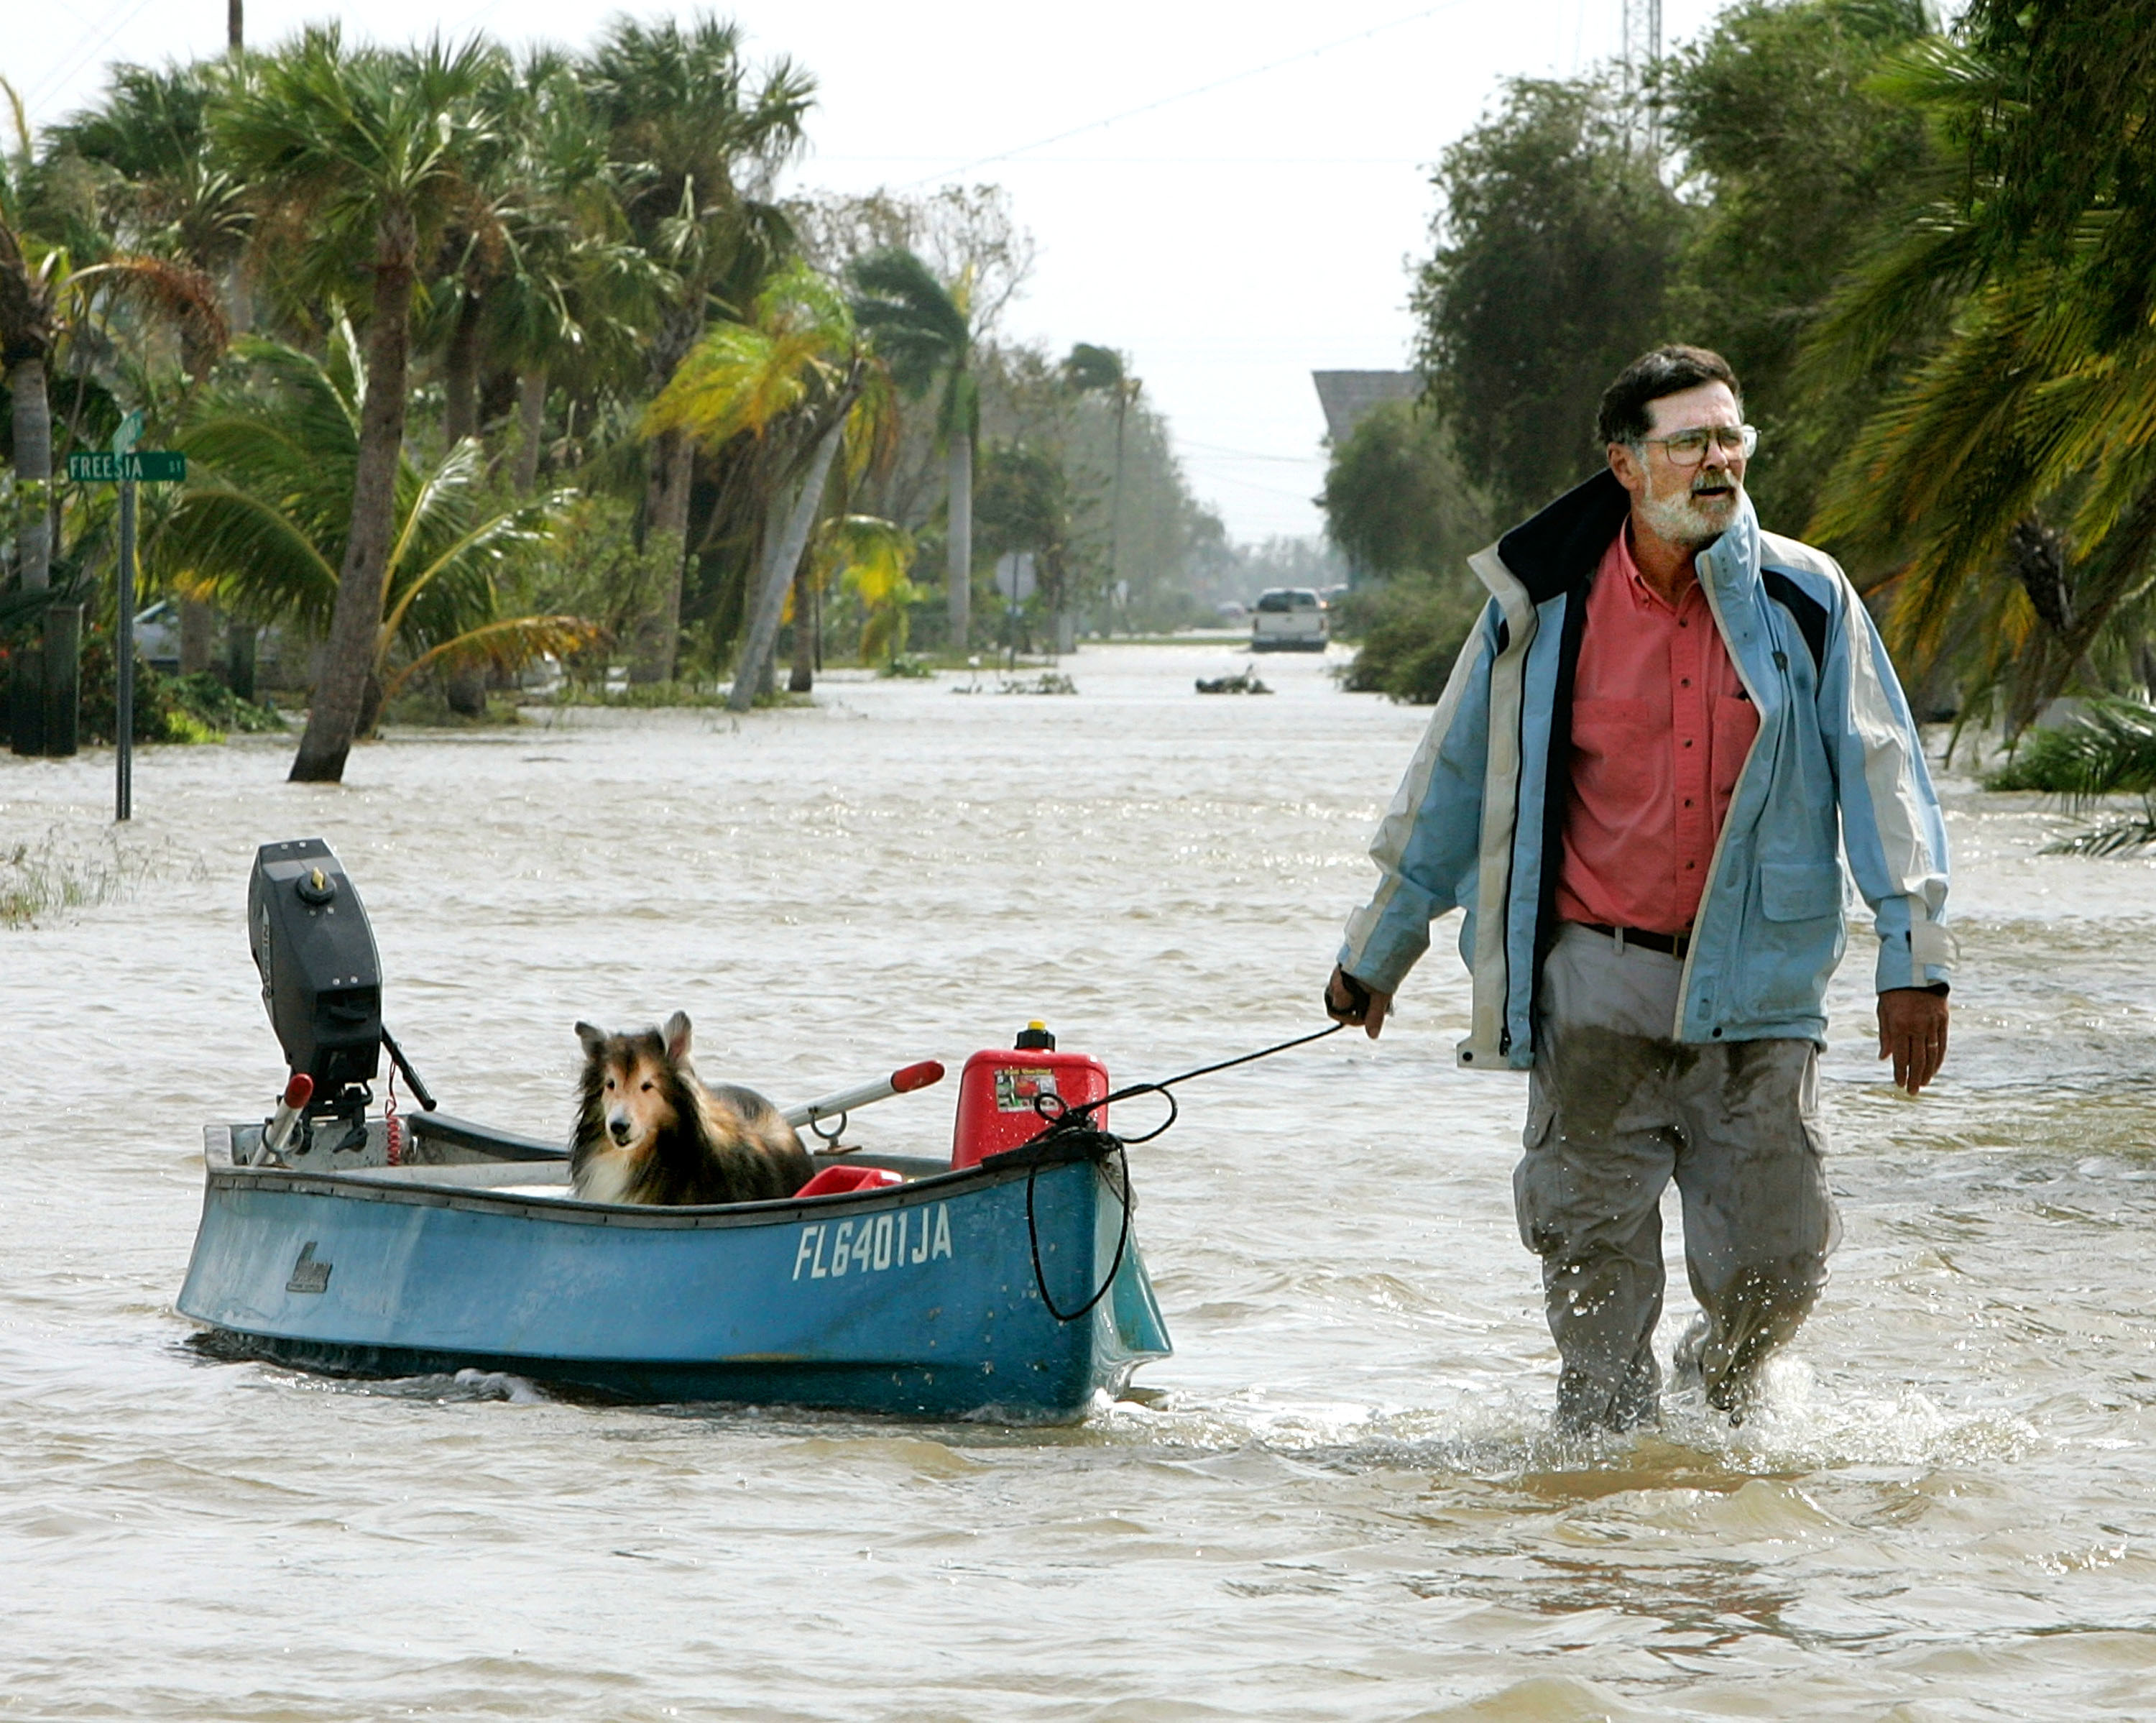 Steve Burke pulls his dog, Toby, down a flooded street in a canoe after Hurricane Wilma arrived this morning Oct. 24, 2005 in Everglades City, Florida.